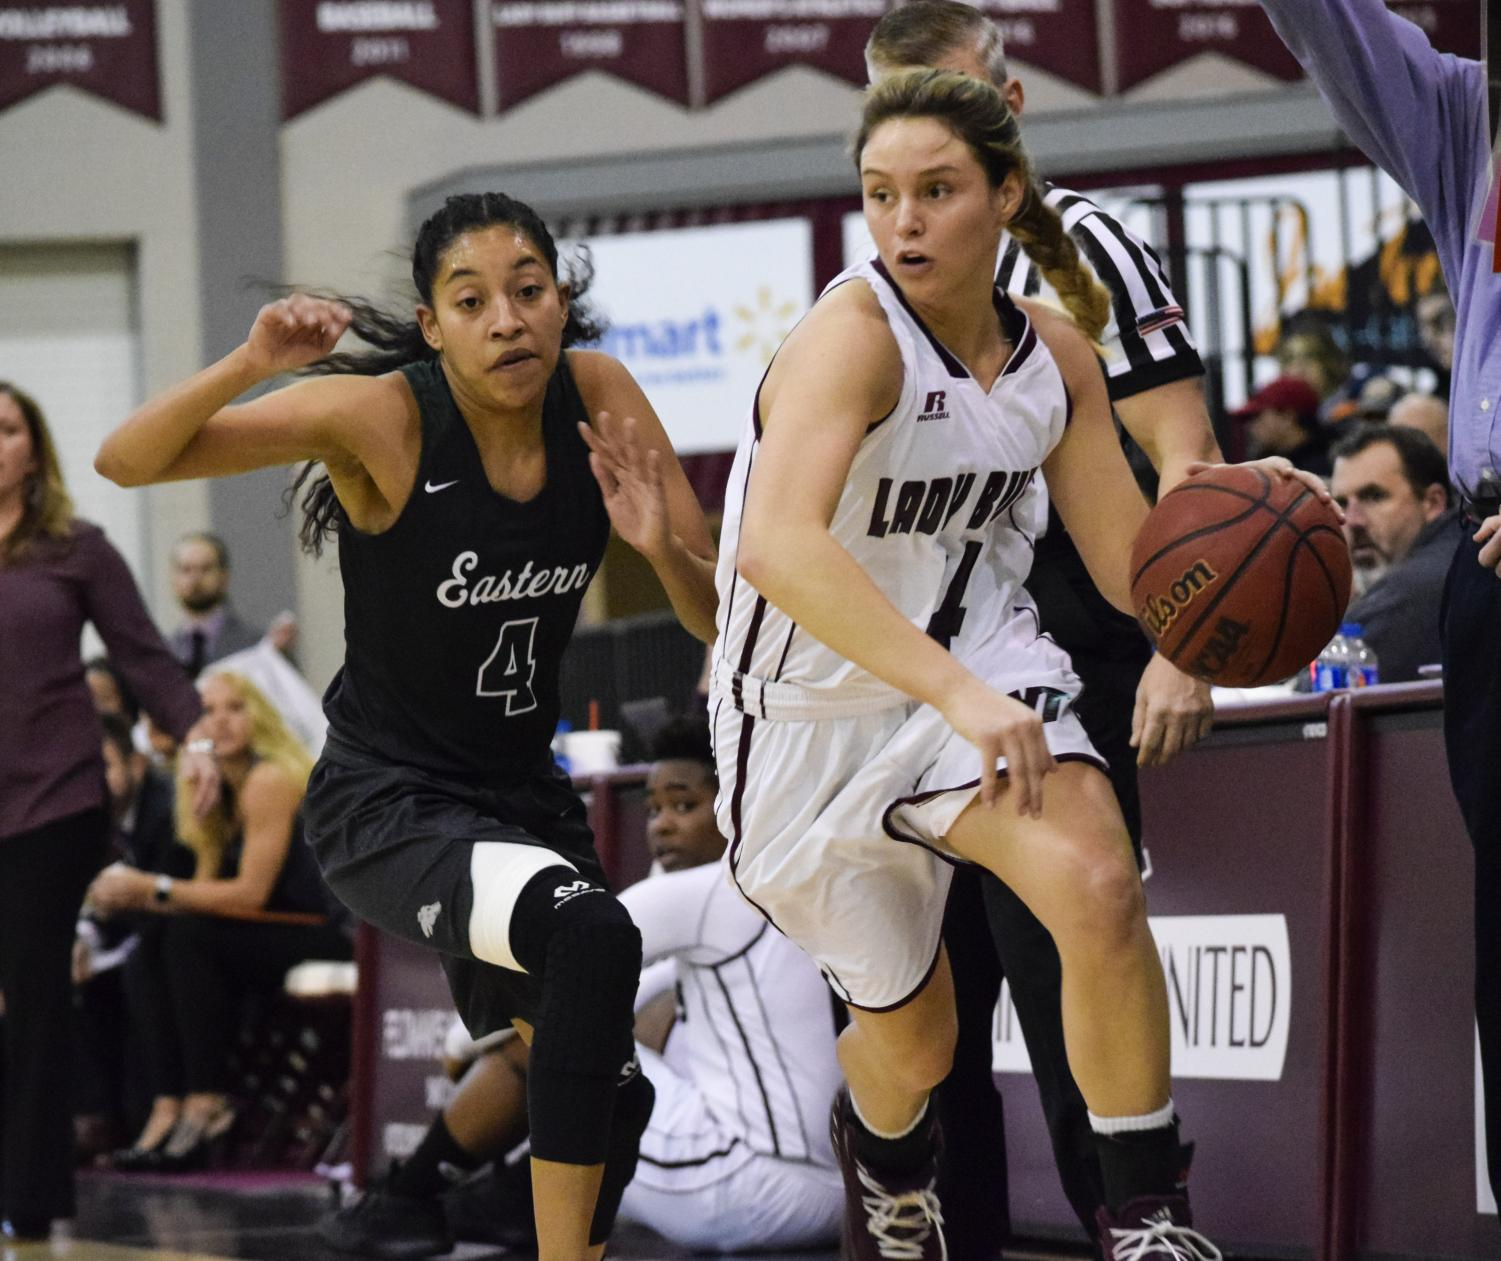 Lexy Hightower has been one of the top sophomores in the country, averaging about 15 points per game for the Lady Buffs